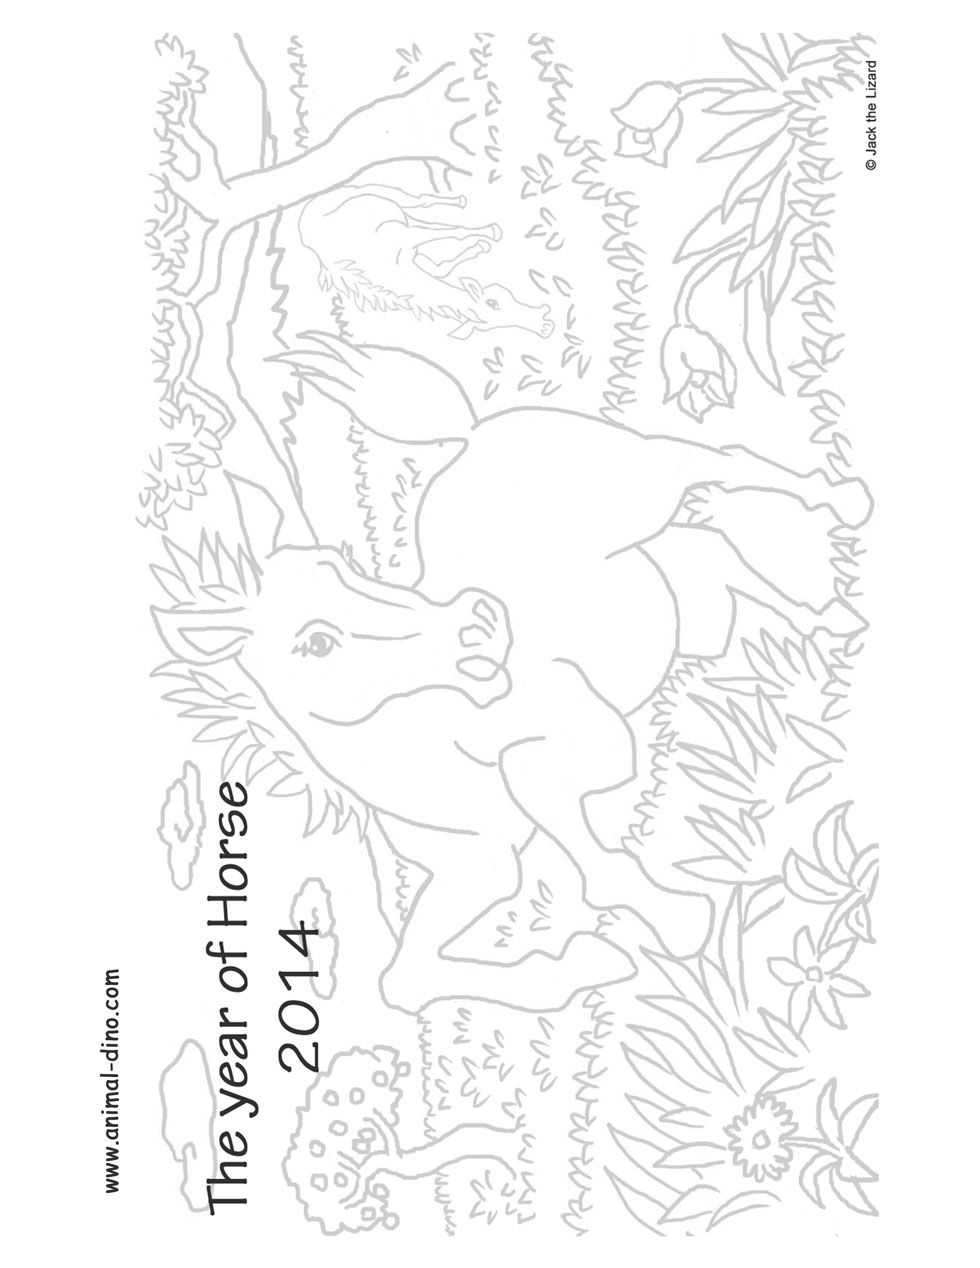 Animal Coloring Page (2014 The Year of Horse) Print Size